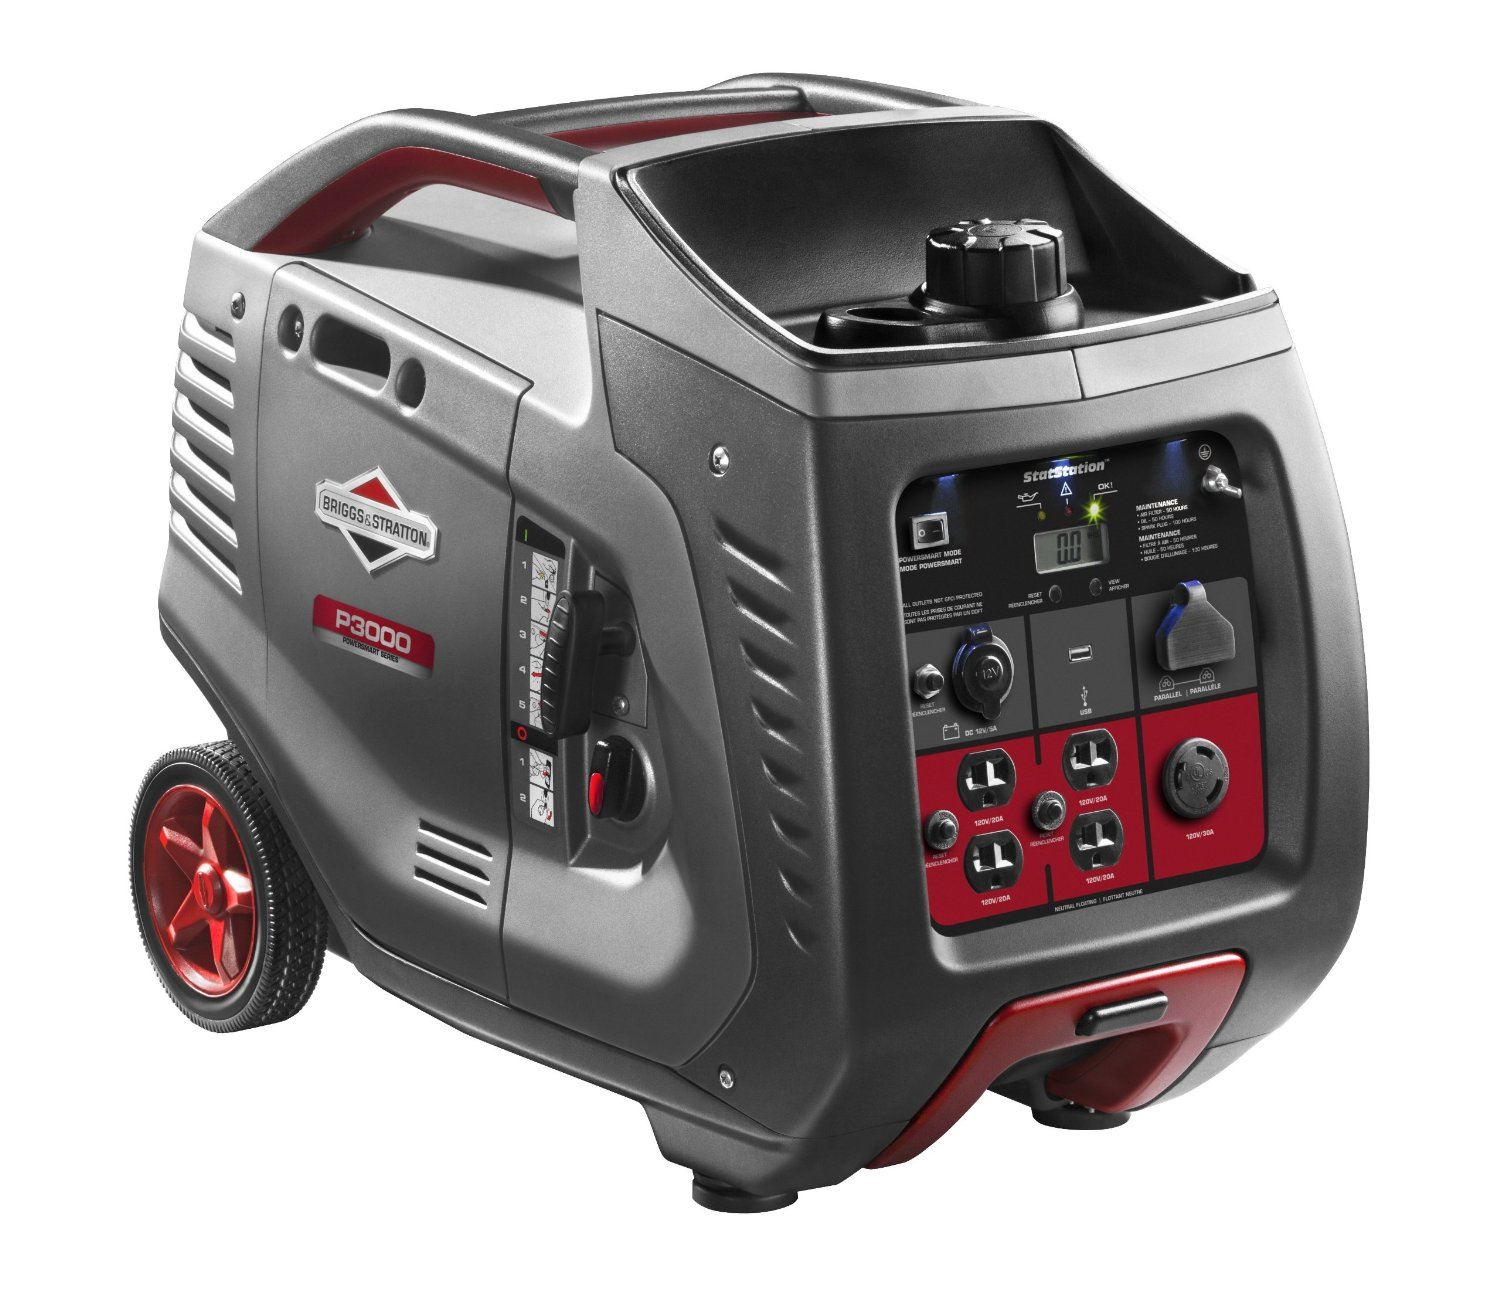 Briggs & Stratton quiet inverter generator